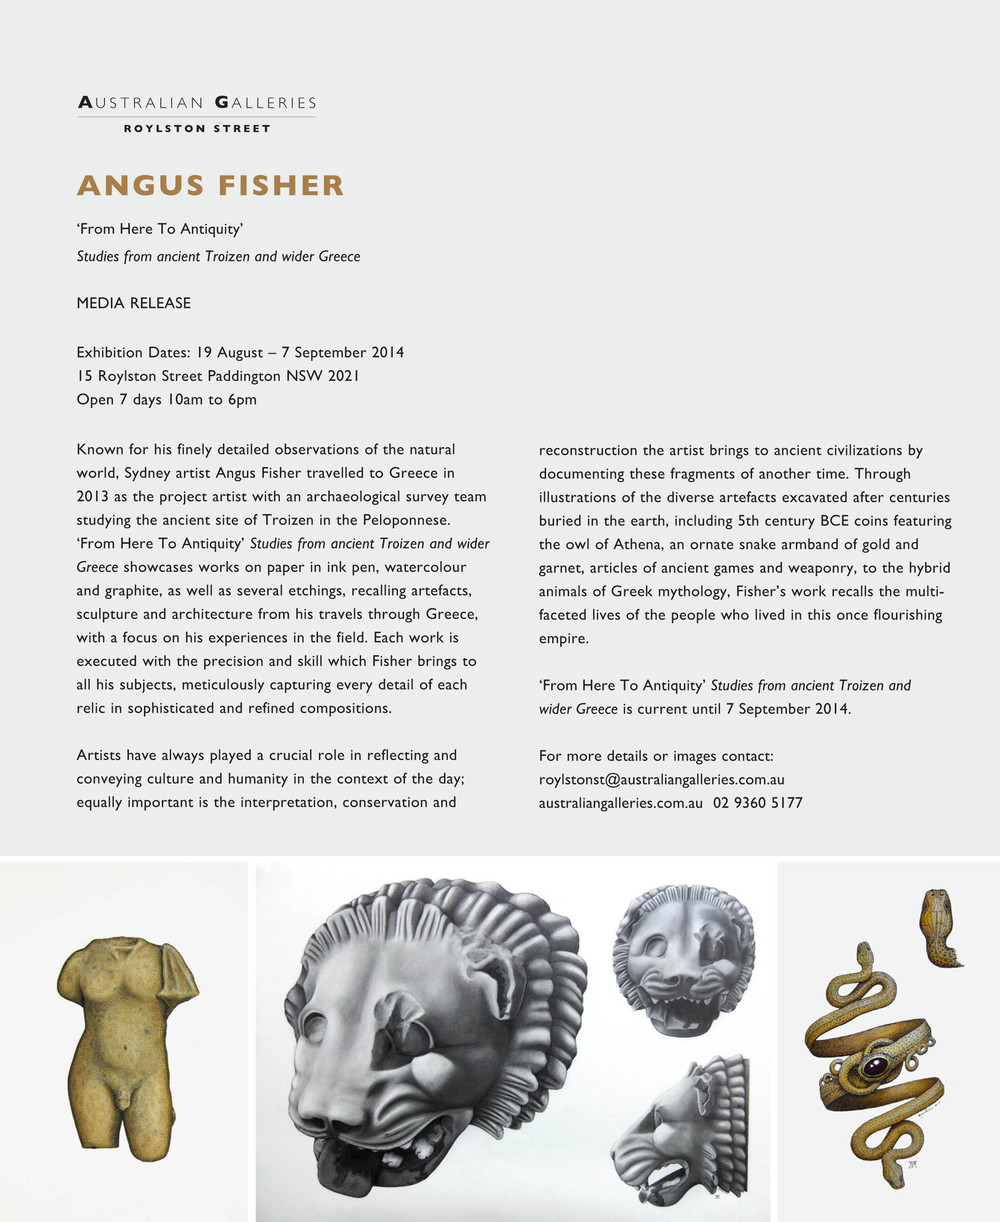 'From Here To Antiquity - Studies from ancient Troizen and wider Greece' Press Release